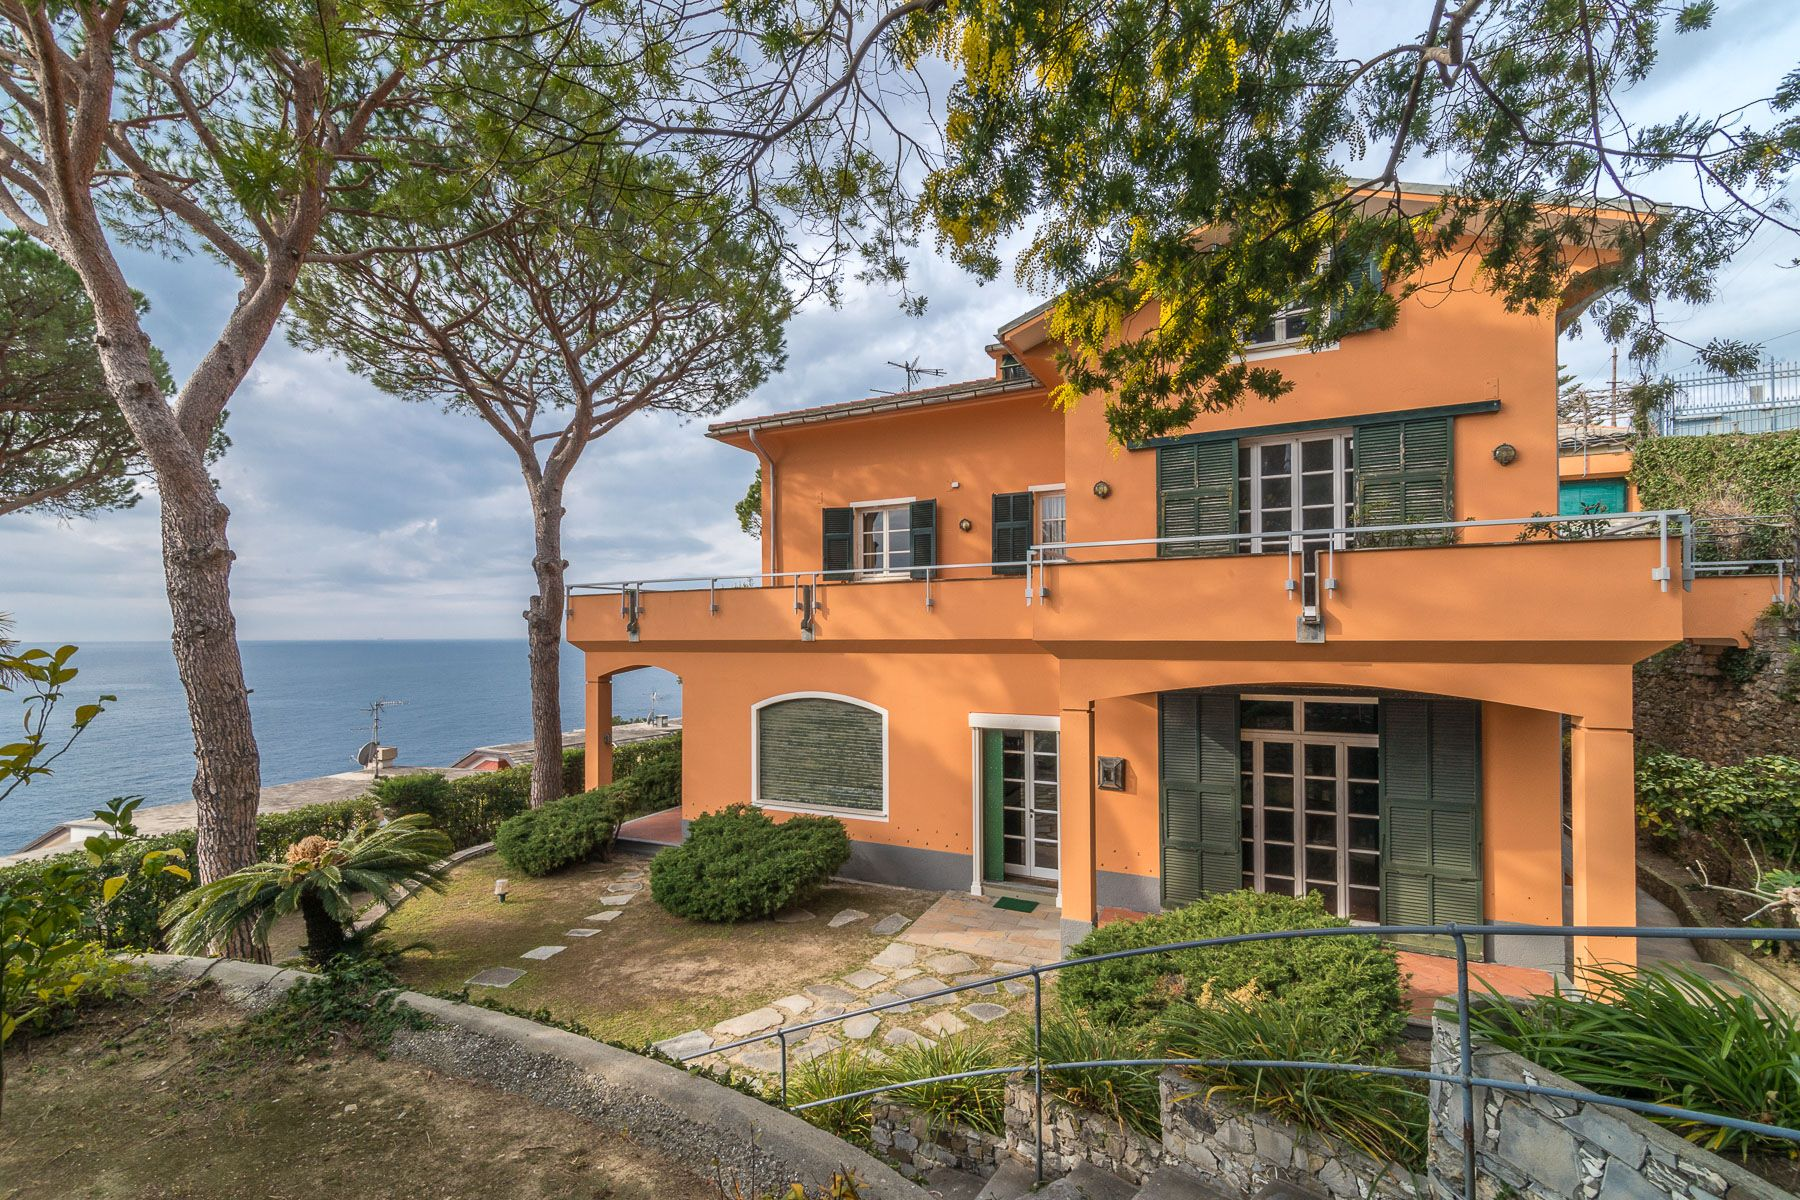 Maison unifamiliale pour l Vente à Beautiful villa overlooking the sea Via Francesco Crispi Autres Genoa, Genoa 16031 Italie